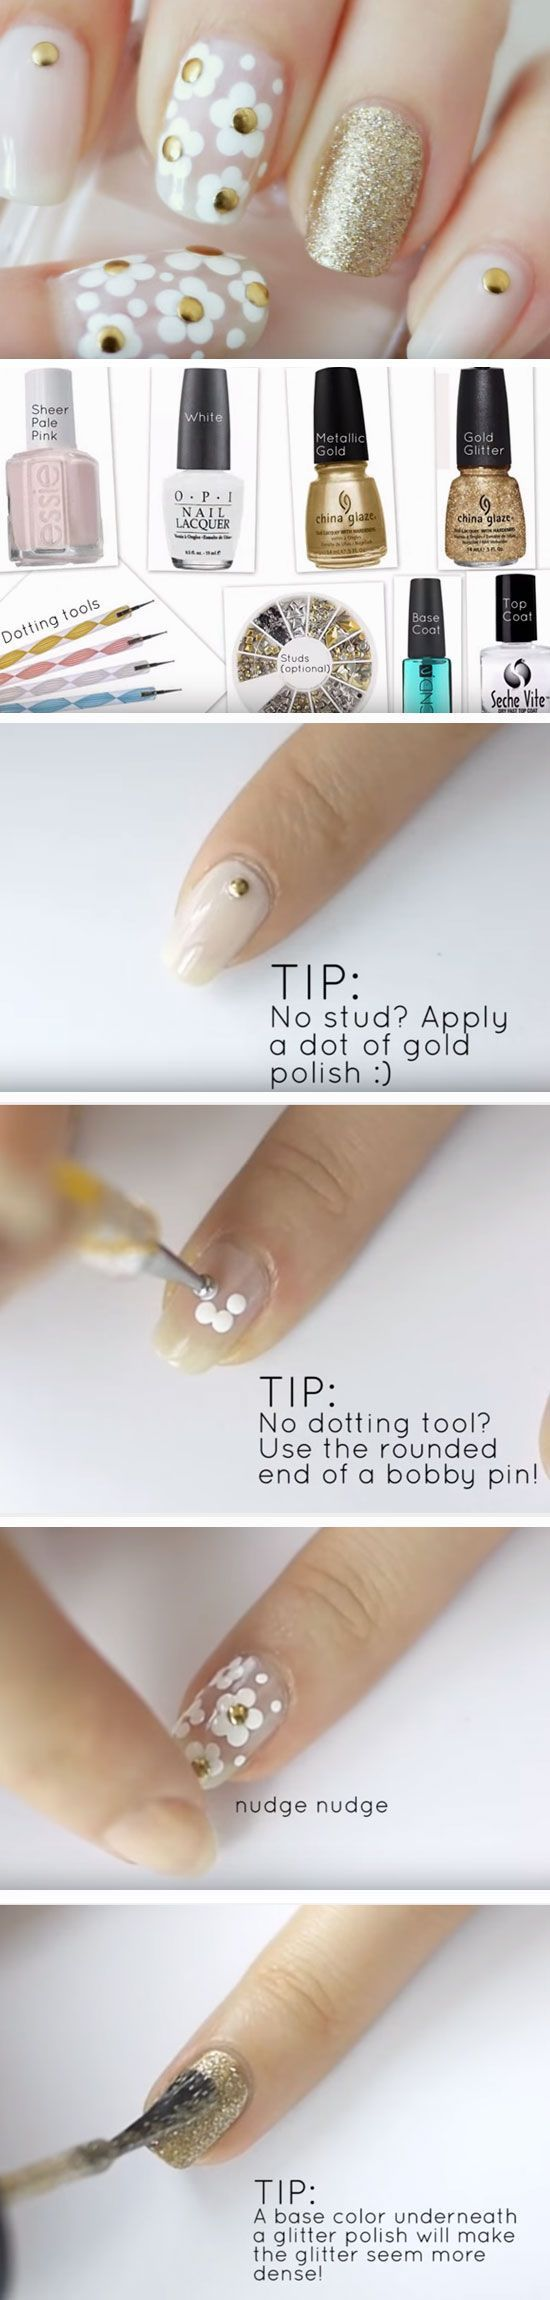 Marc Jacobs Daisy Inspired | Easy Spring Nail Designs for Short Nails 2016 #ManicureDIY